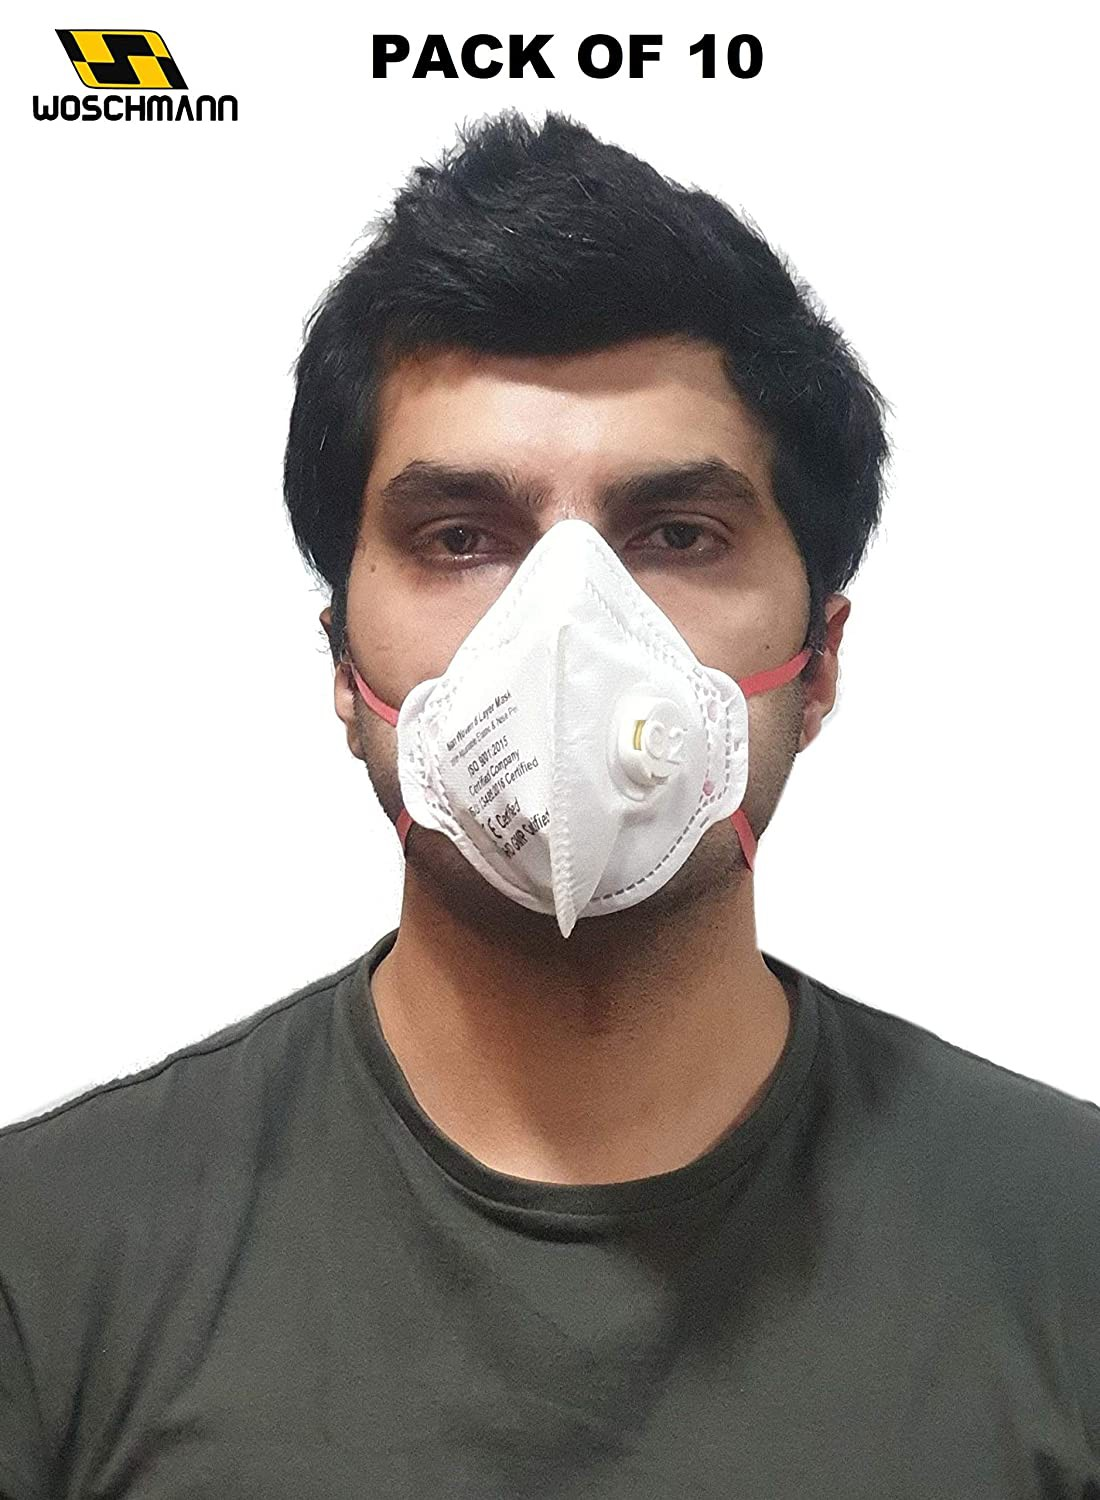 woschmann-t07-pollution-mask-with-filter-good-to-fight-air-pollution-bacteriapack-of-10-blackwhite